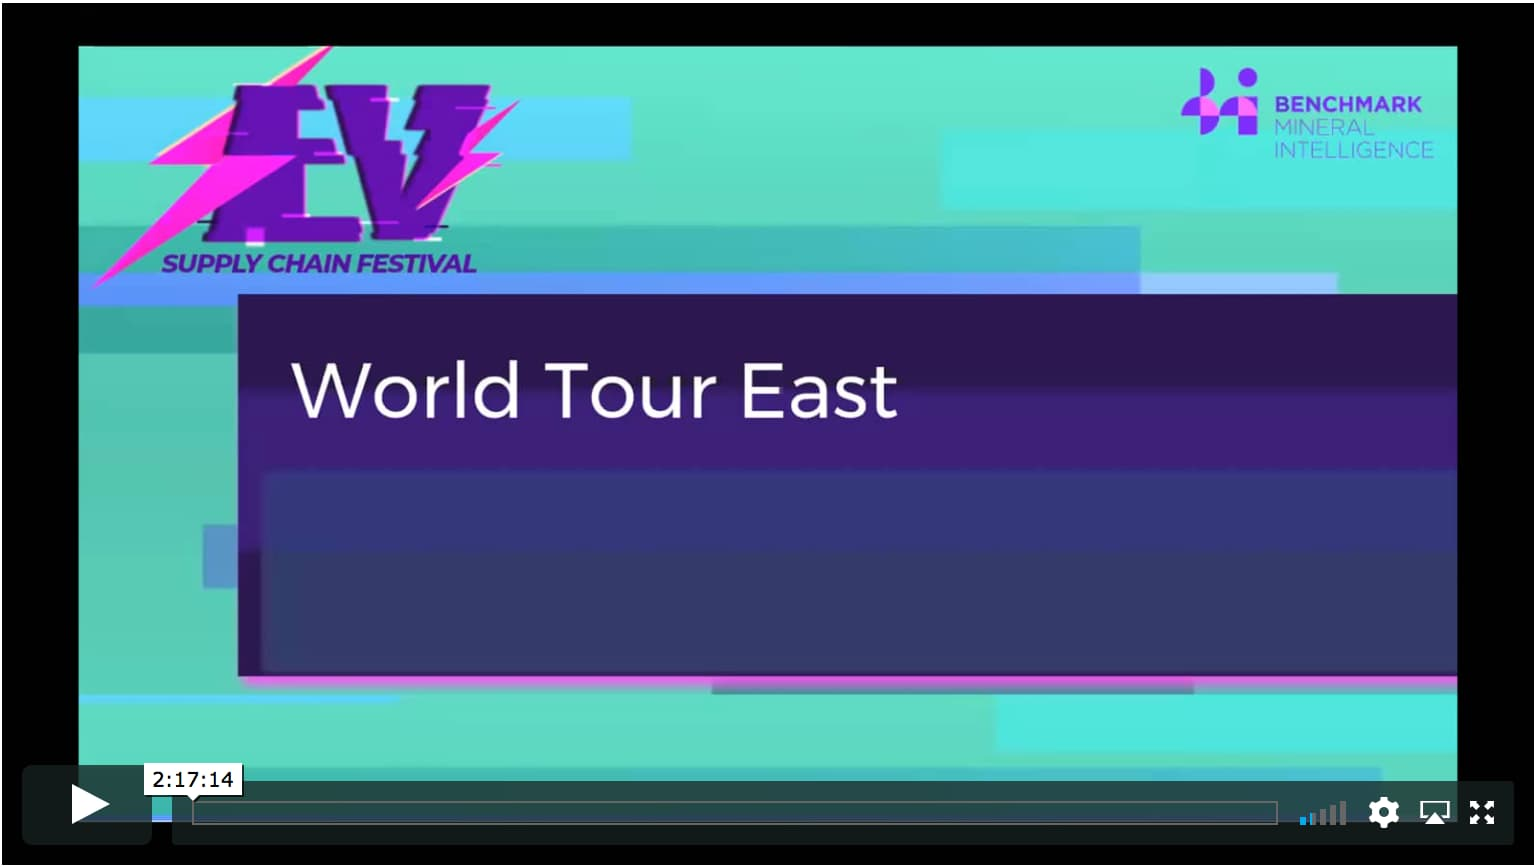 World Tour East